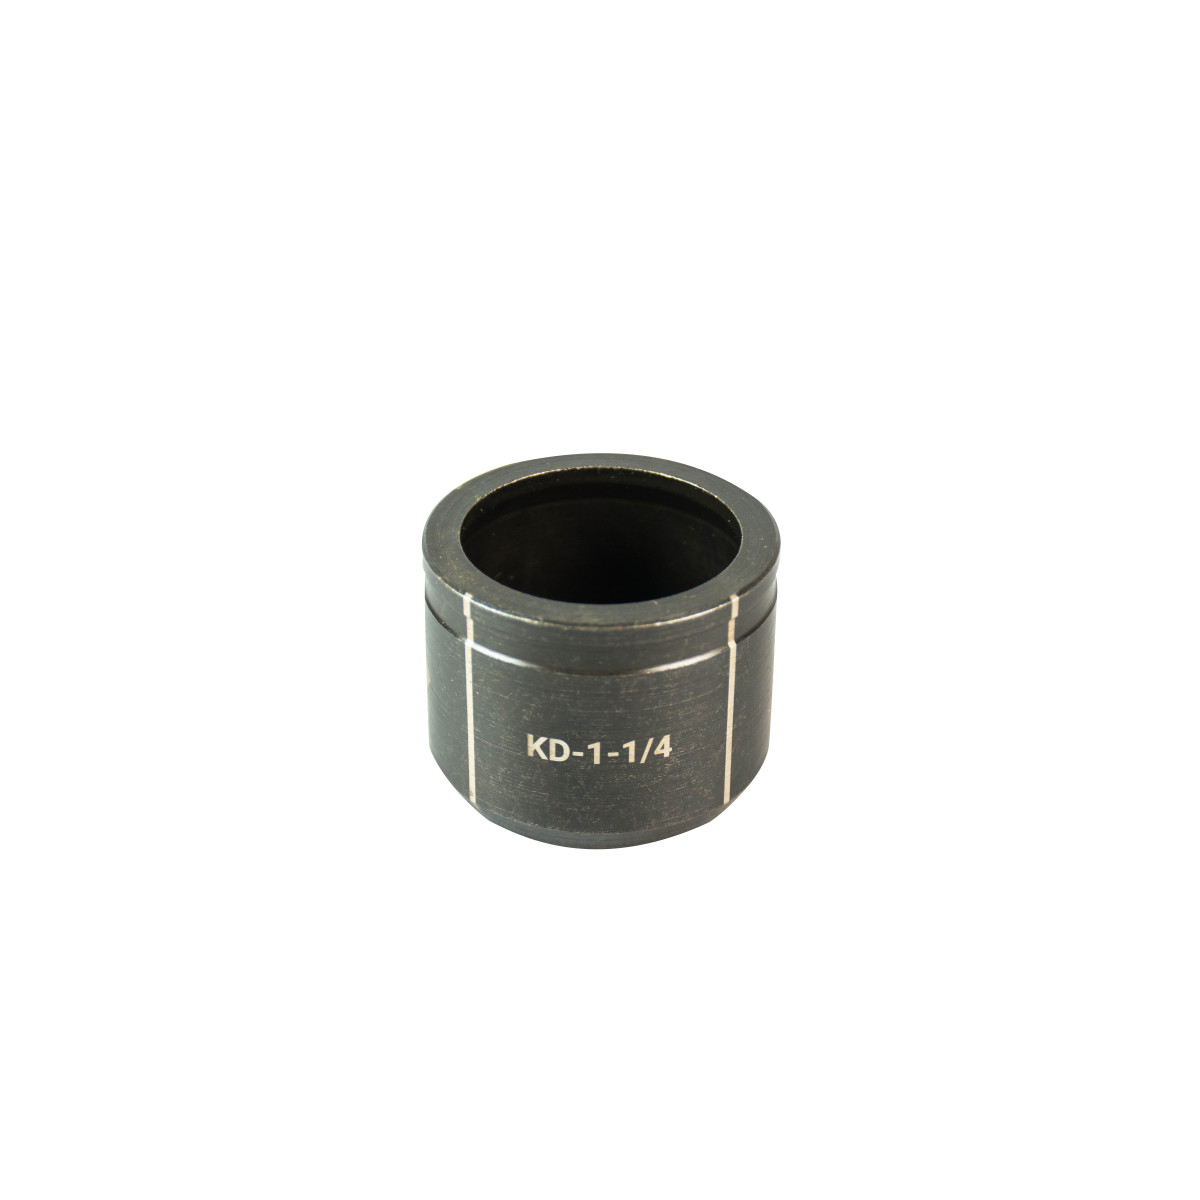 """GREENLEE 1-1/4"""" Conduit Size Knockout Die.  Optimized for widest range of materials and drivers.  Alignment markings for improved accuracy.  Laser markings for quick part identification.  Made in USA"""